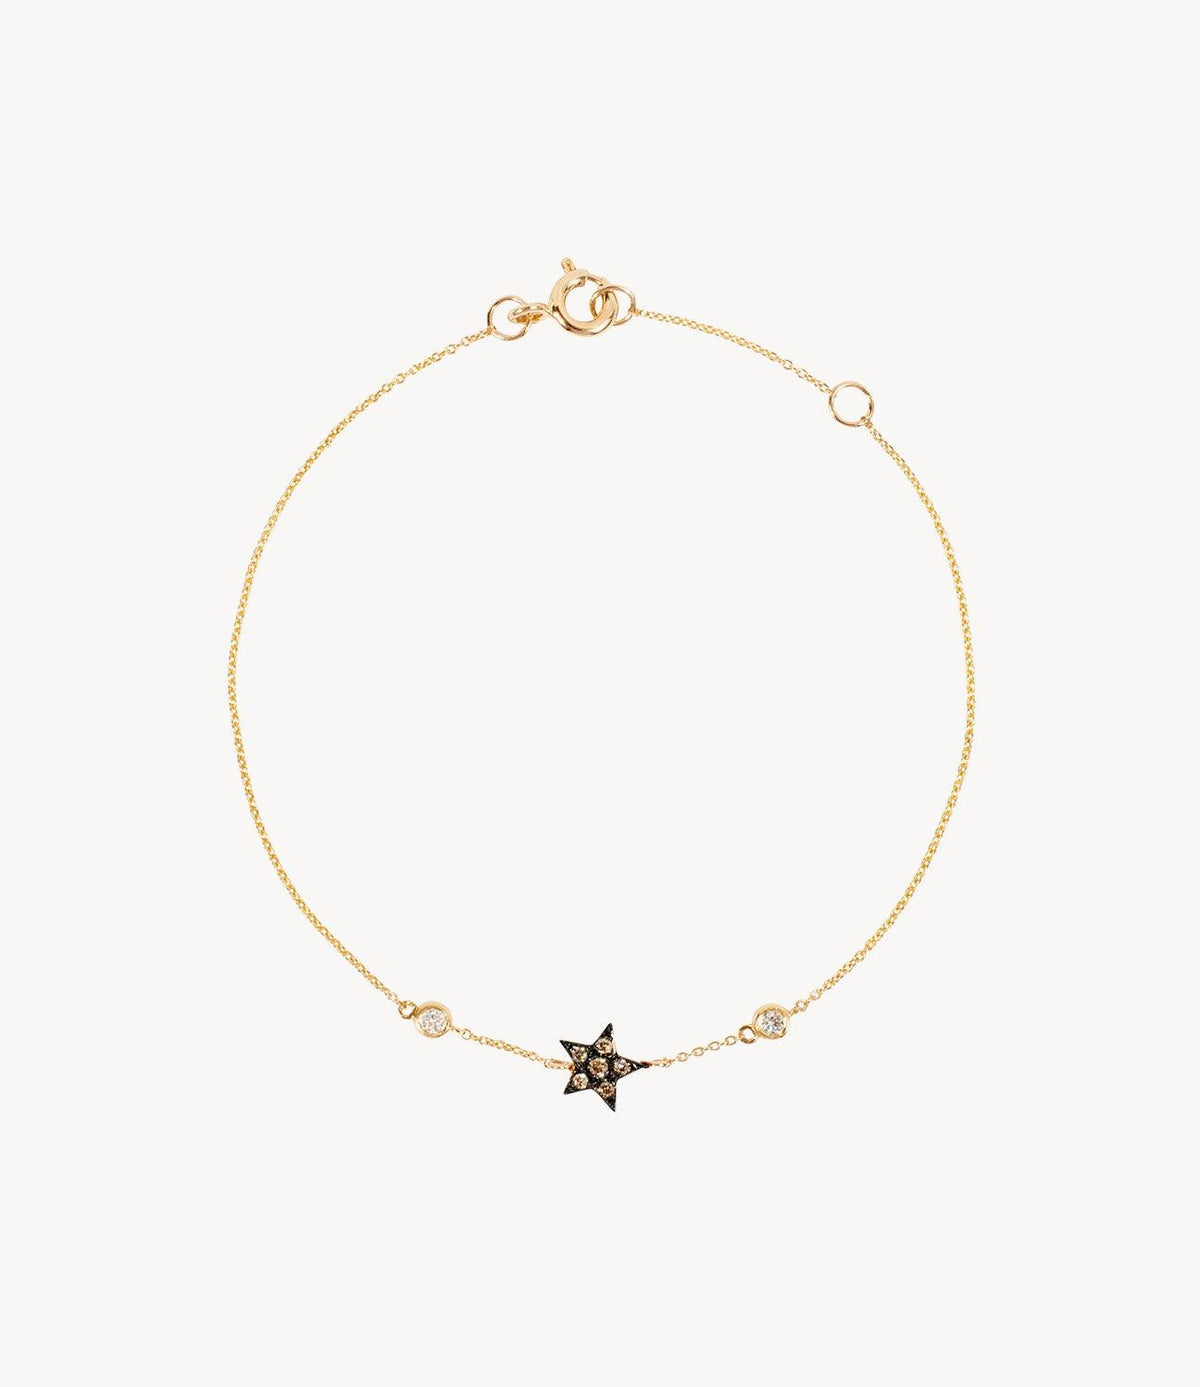 Louise's Mini Diamond Star Bracelet